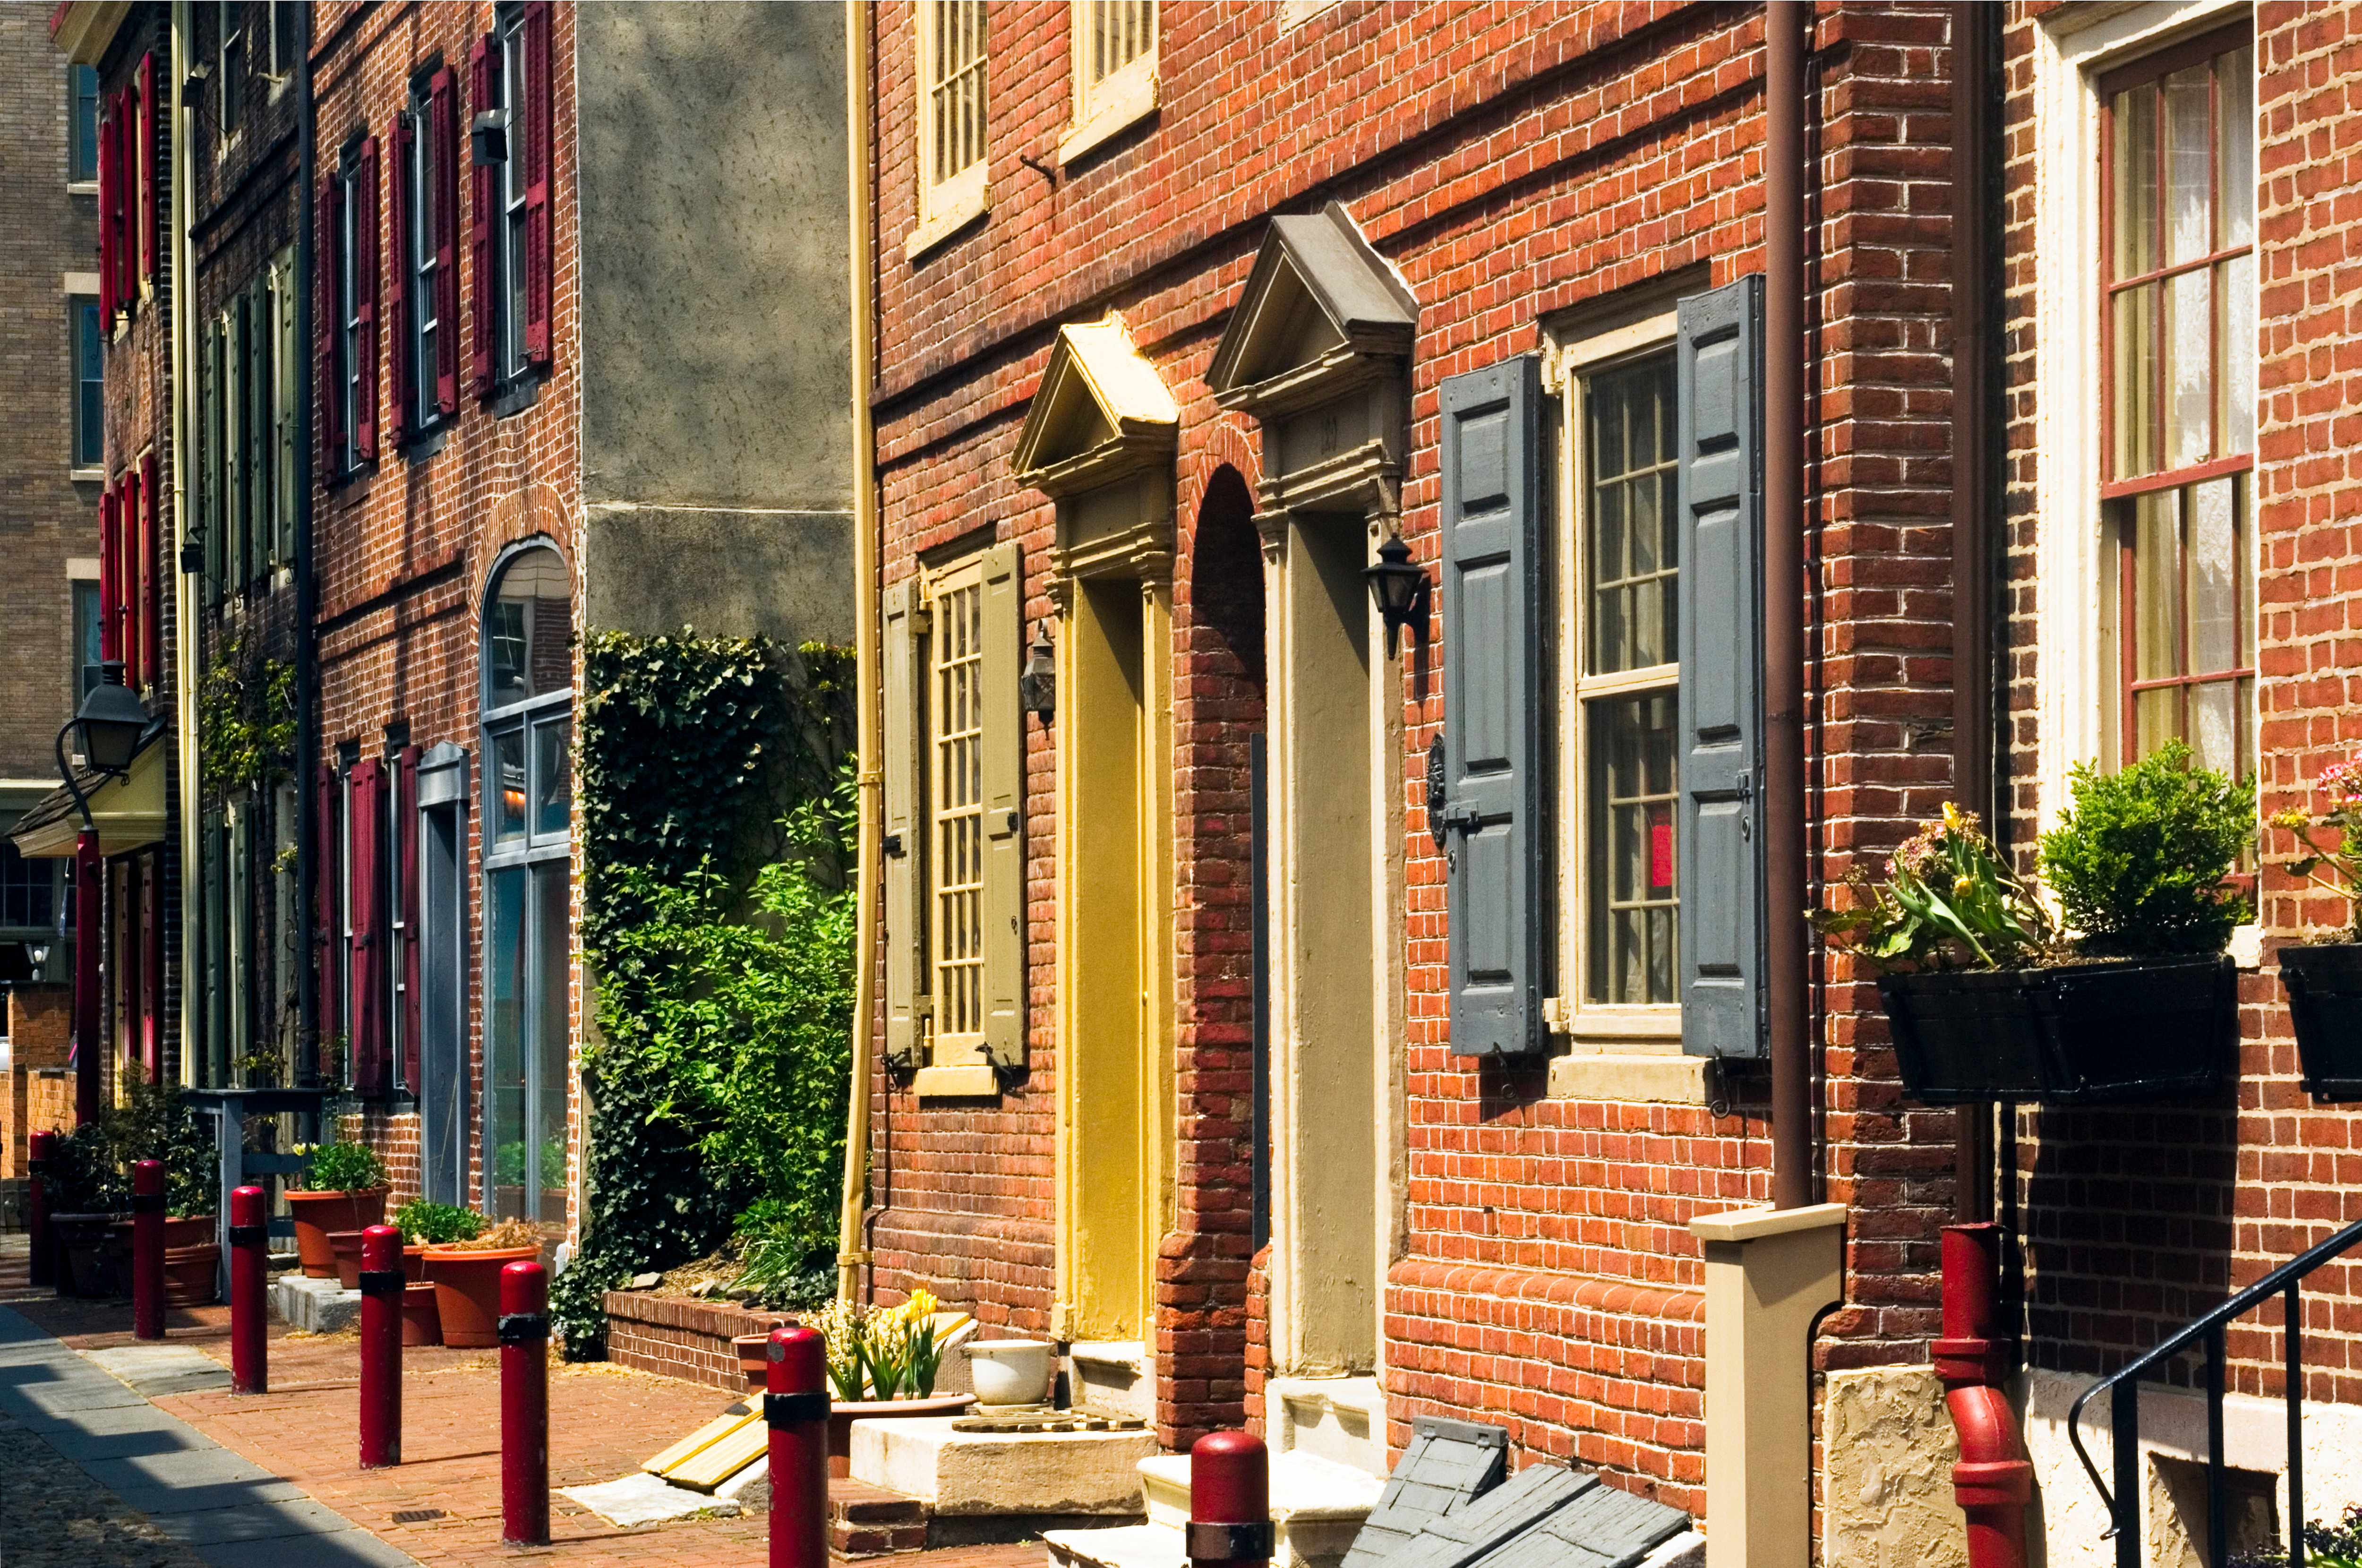 Elfreth's Alley, Philadelphia, Pennsylvania, the oldest residential street in the United States. (Photo by John Greim/LightRocket via Getty Images)